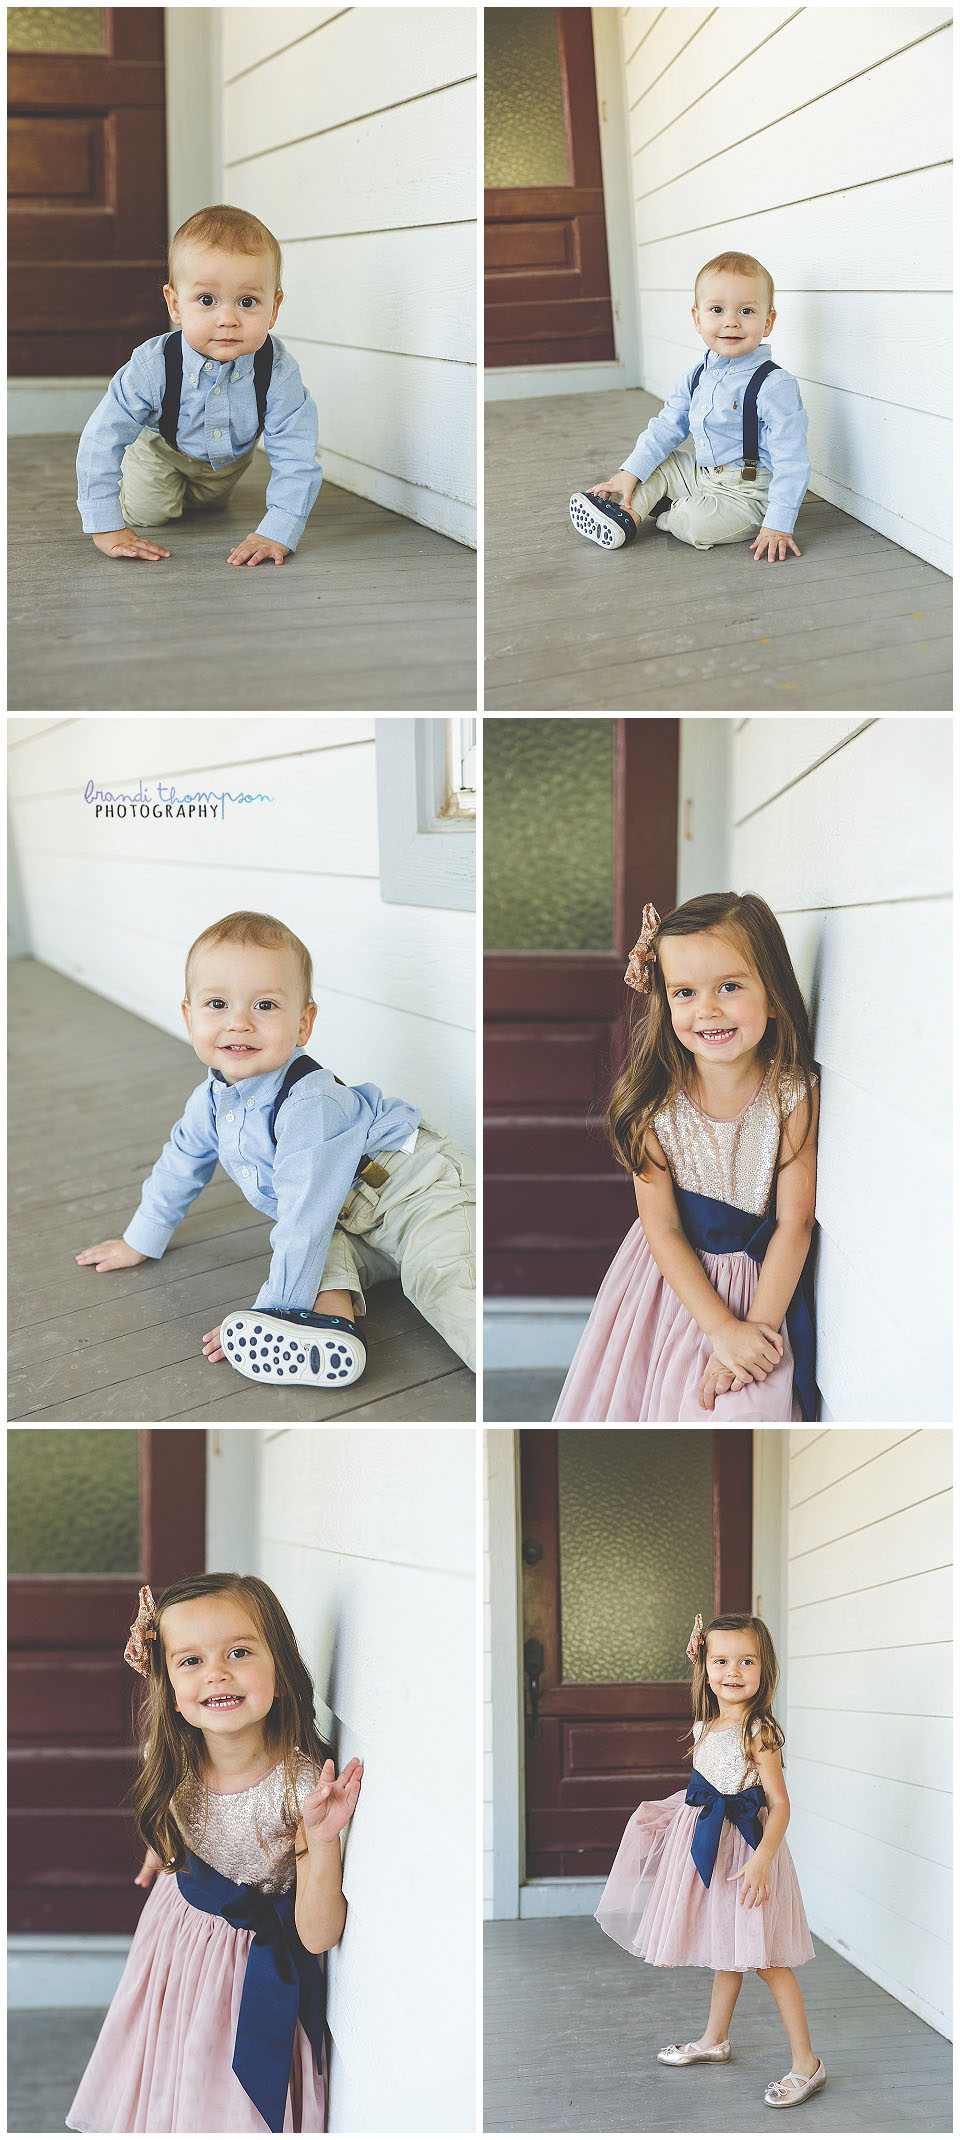 outdoor family session with vintage buildings in frisco texas. dad, mom, young daughter and baby boy